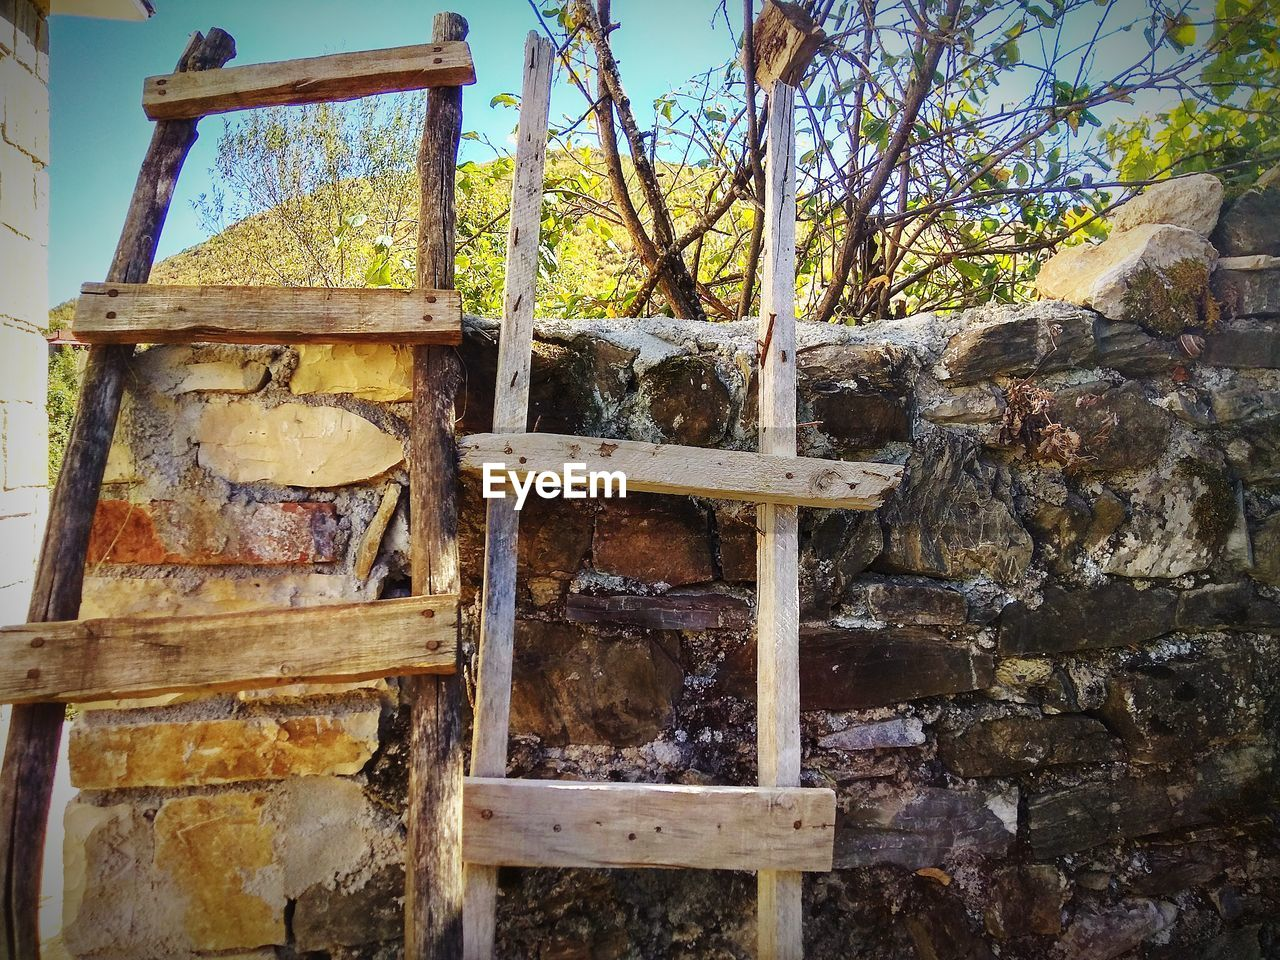 no people, day, old, tree, built structure, wood - material, nature, weathered, wall - building feature, architecture, wall, outdoors, rusty, plant, abandoned, low angle view, stone wall, metal, damaged, obsolete, deterioration, ladder, ruined